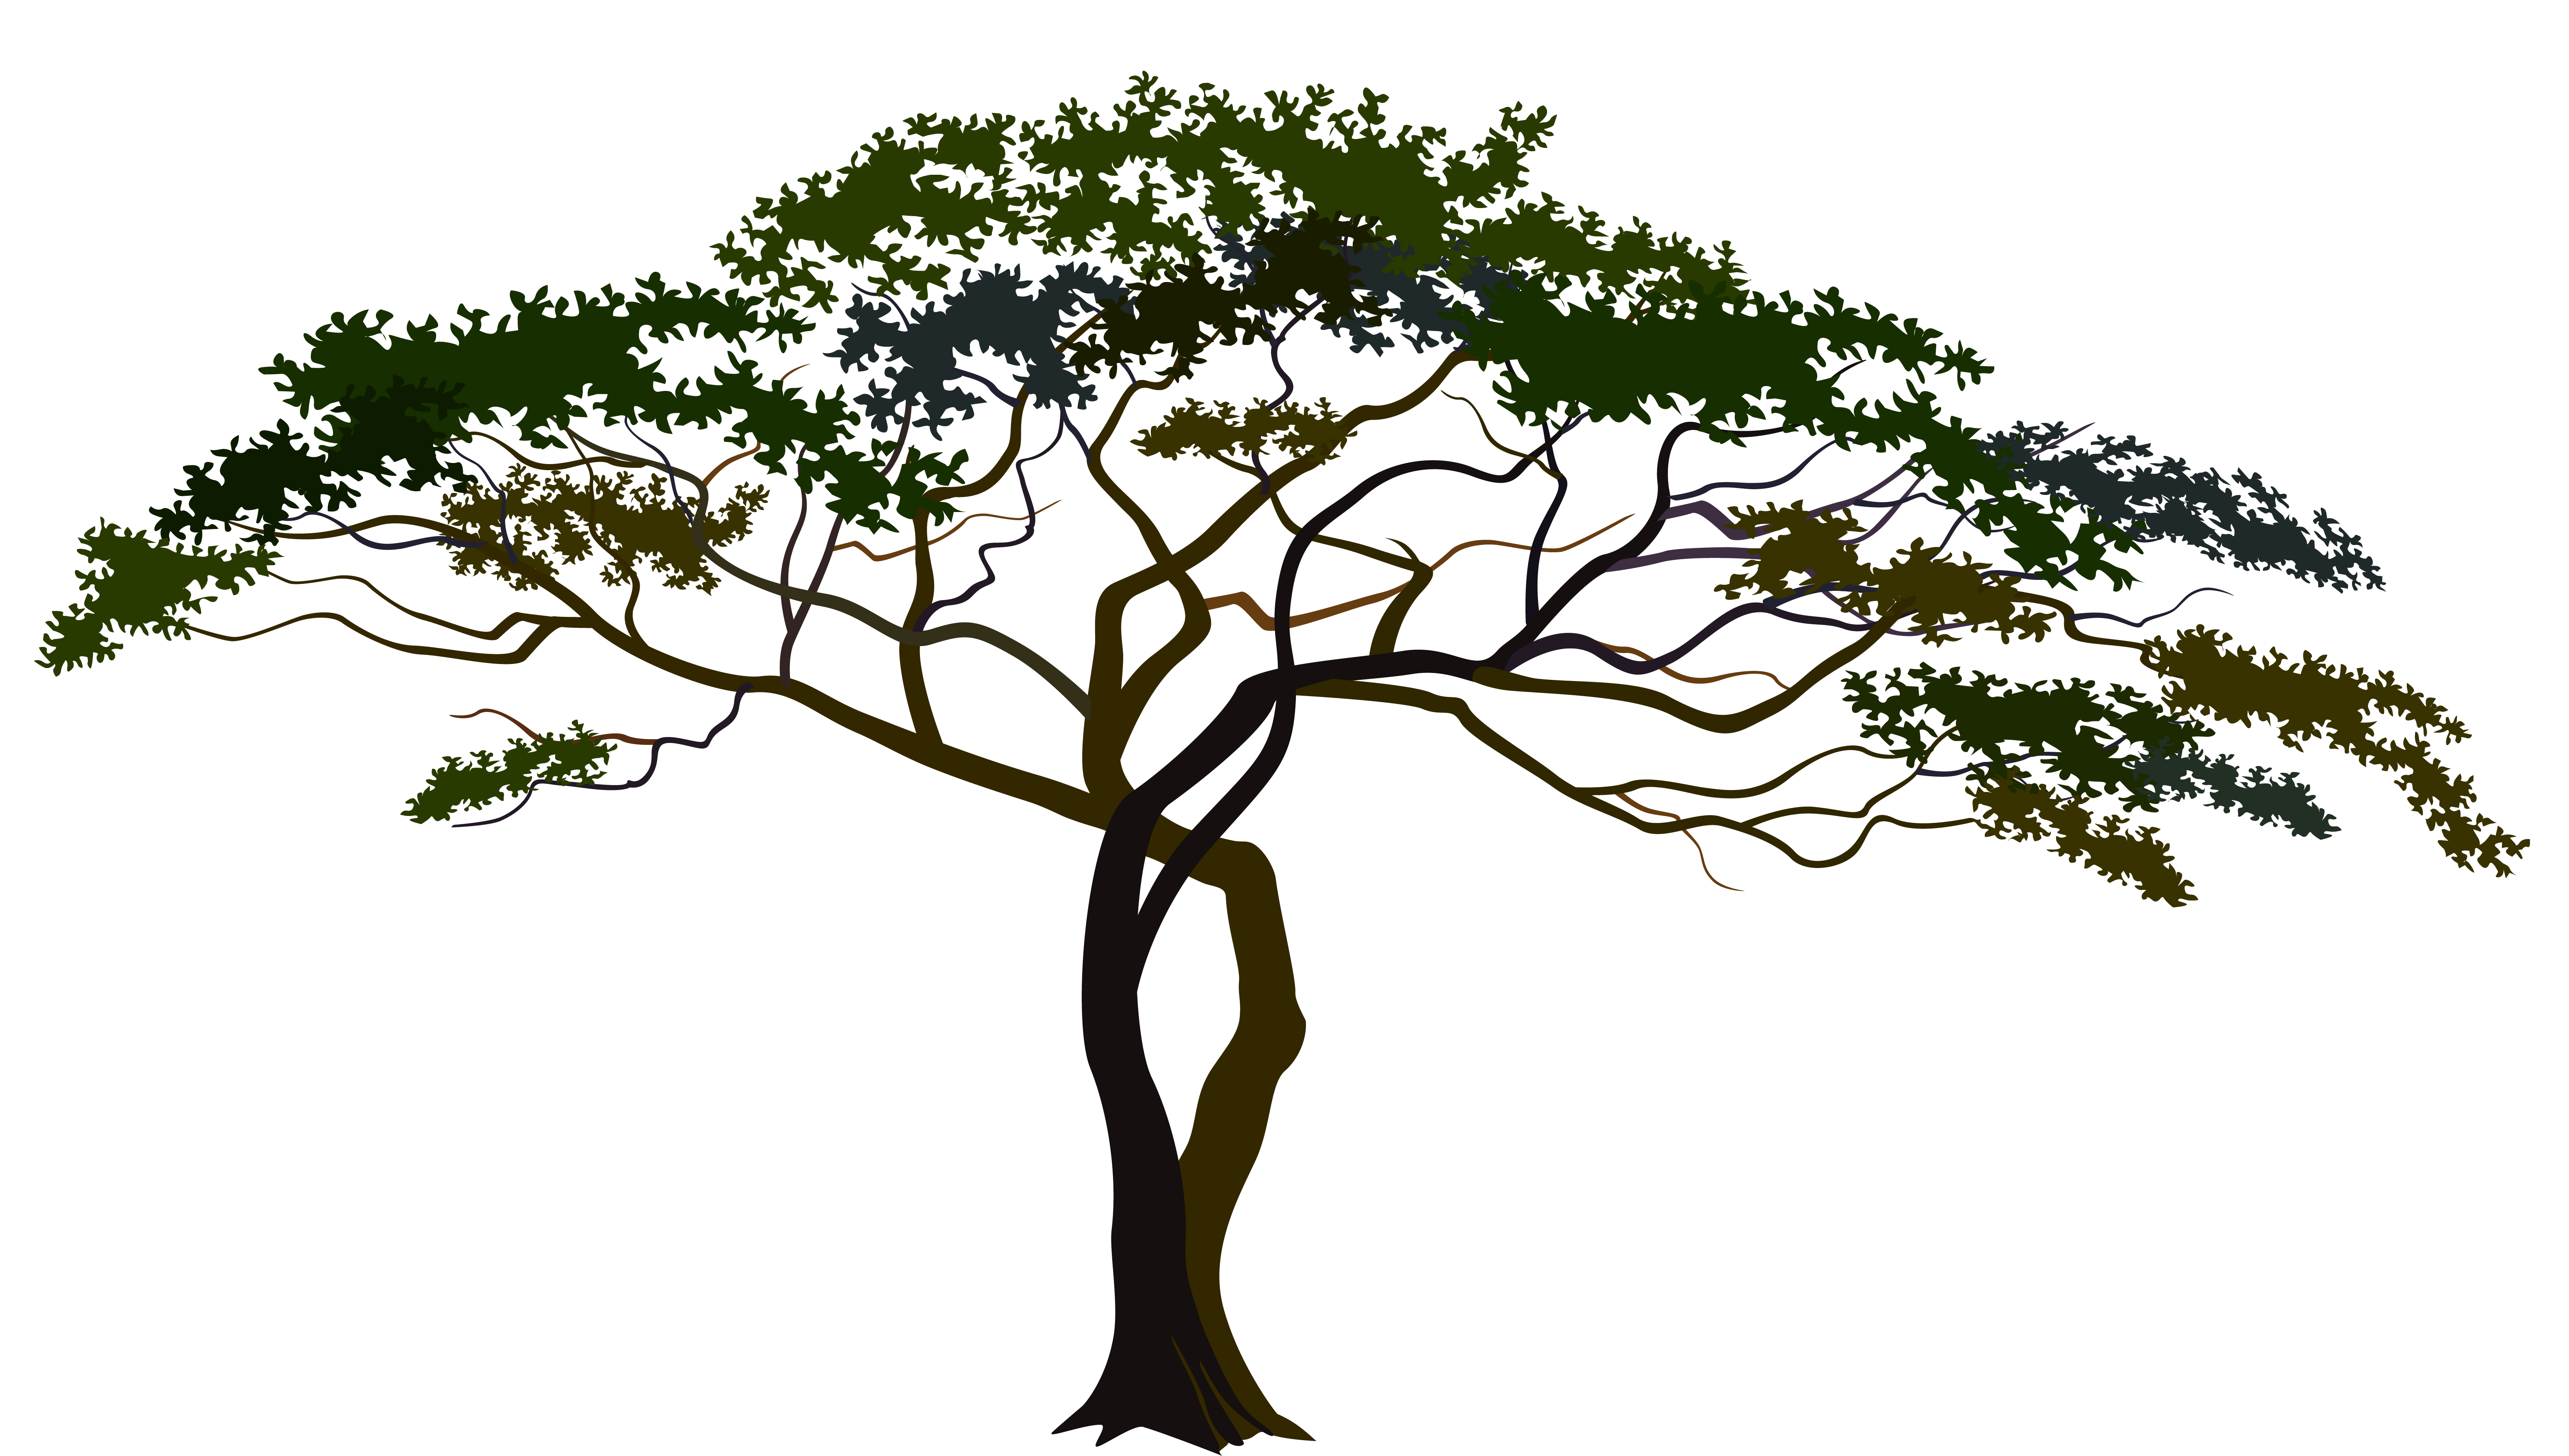 Tree clipart with transparent background graphic transparent download Savannah Tree PNG Clipart Image | Gallery Yopriceville - High ... graphic transparent download